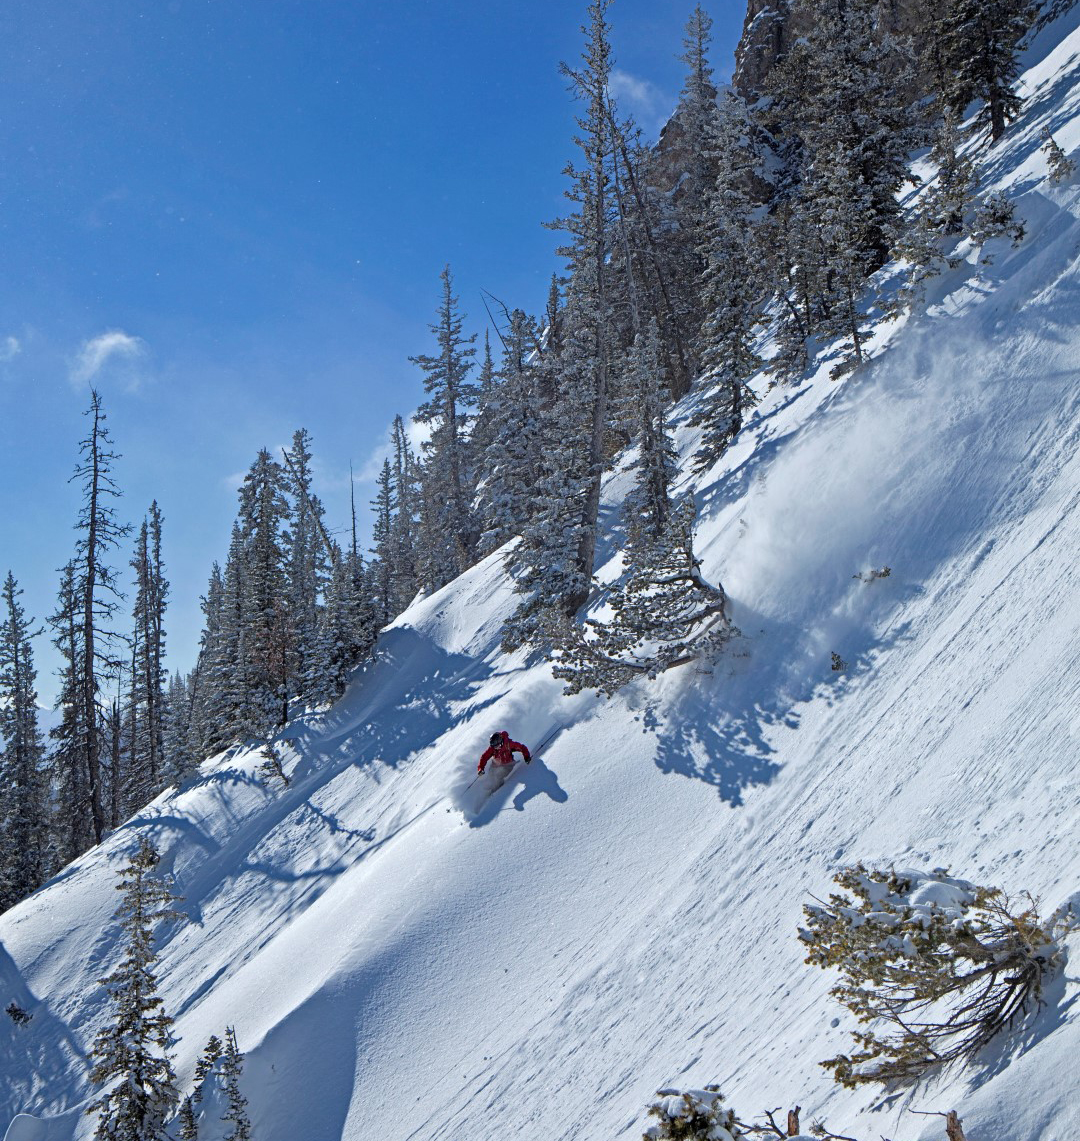 "The non-profit, condo-free Bridger Bowl continues to attract self-described ""ski freaks,"" largely due to the influence of a few locals. In 1977, Tom Jungst moved to Bozeman to join the Montana State University ski racing team. Jungst, Scot Schmidt, and Doug Coombs pioneered extreme terrain in the area and appeared in classic ski films by Warren Miller and Greg Stump. Honing their techniques at Bridger, they helped spark the steep skiing gospel that has since spread worldwide. Pat Clayton photo courtesy Bridger Bowl."